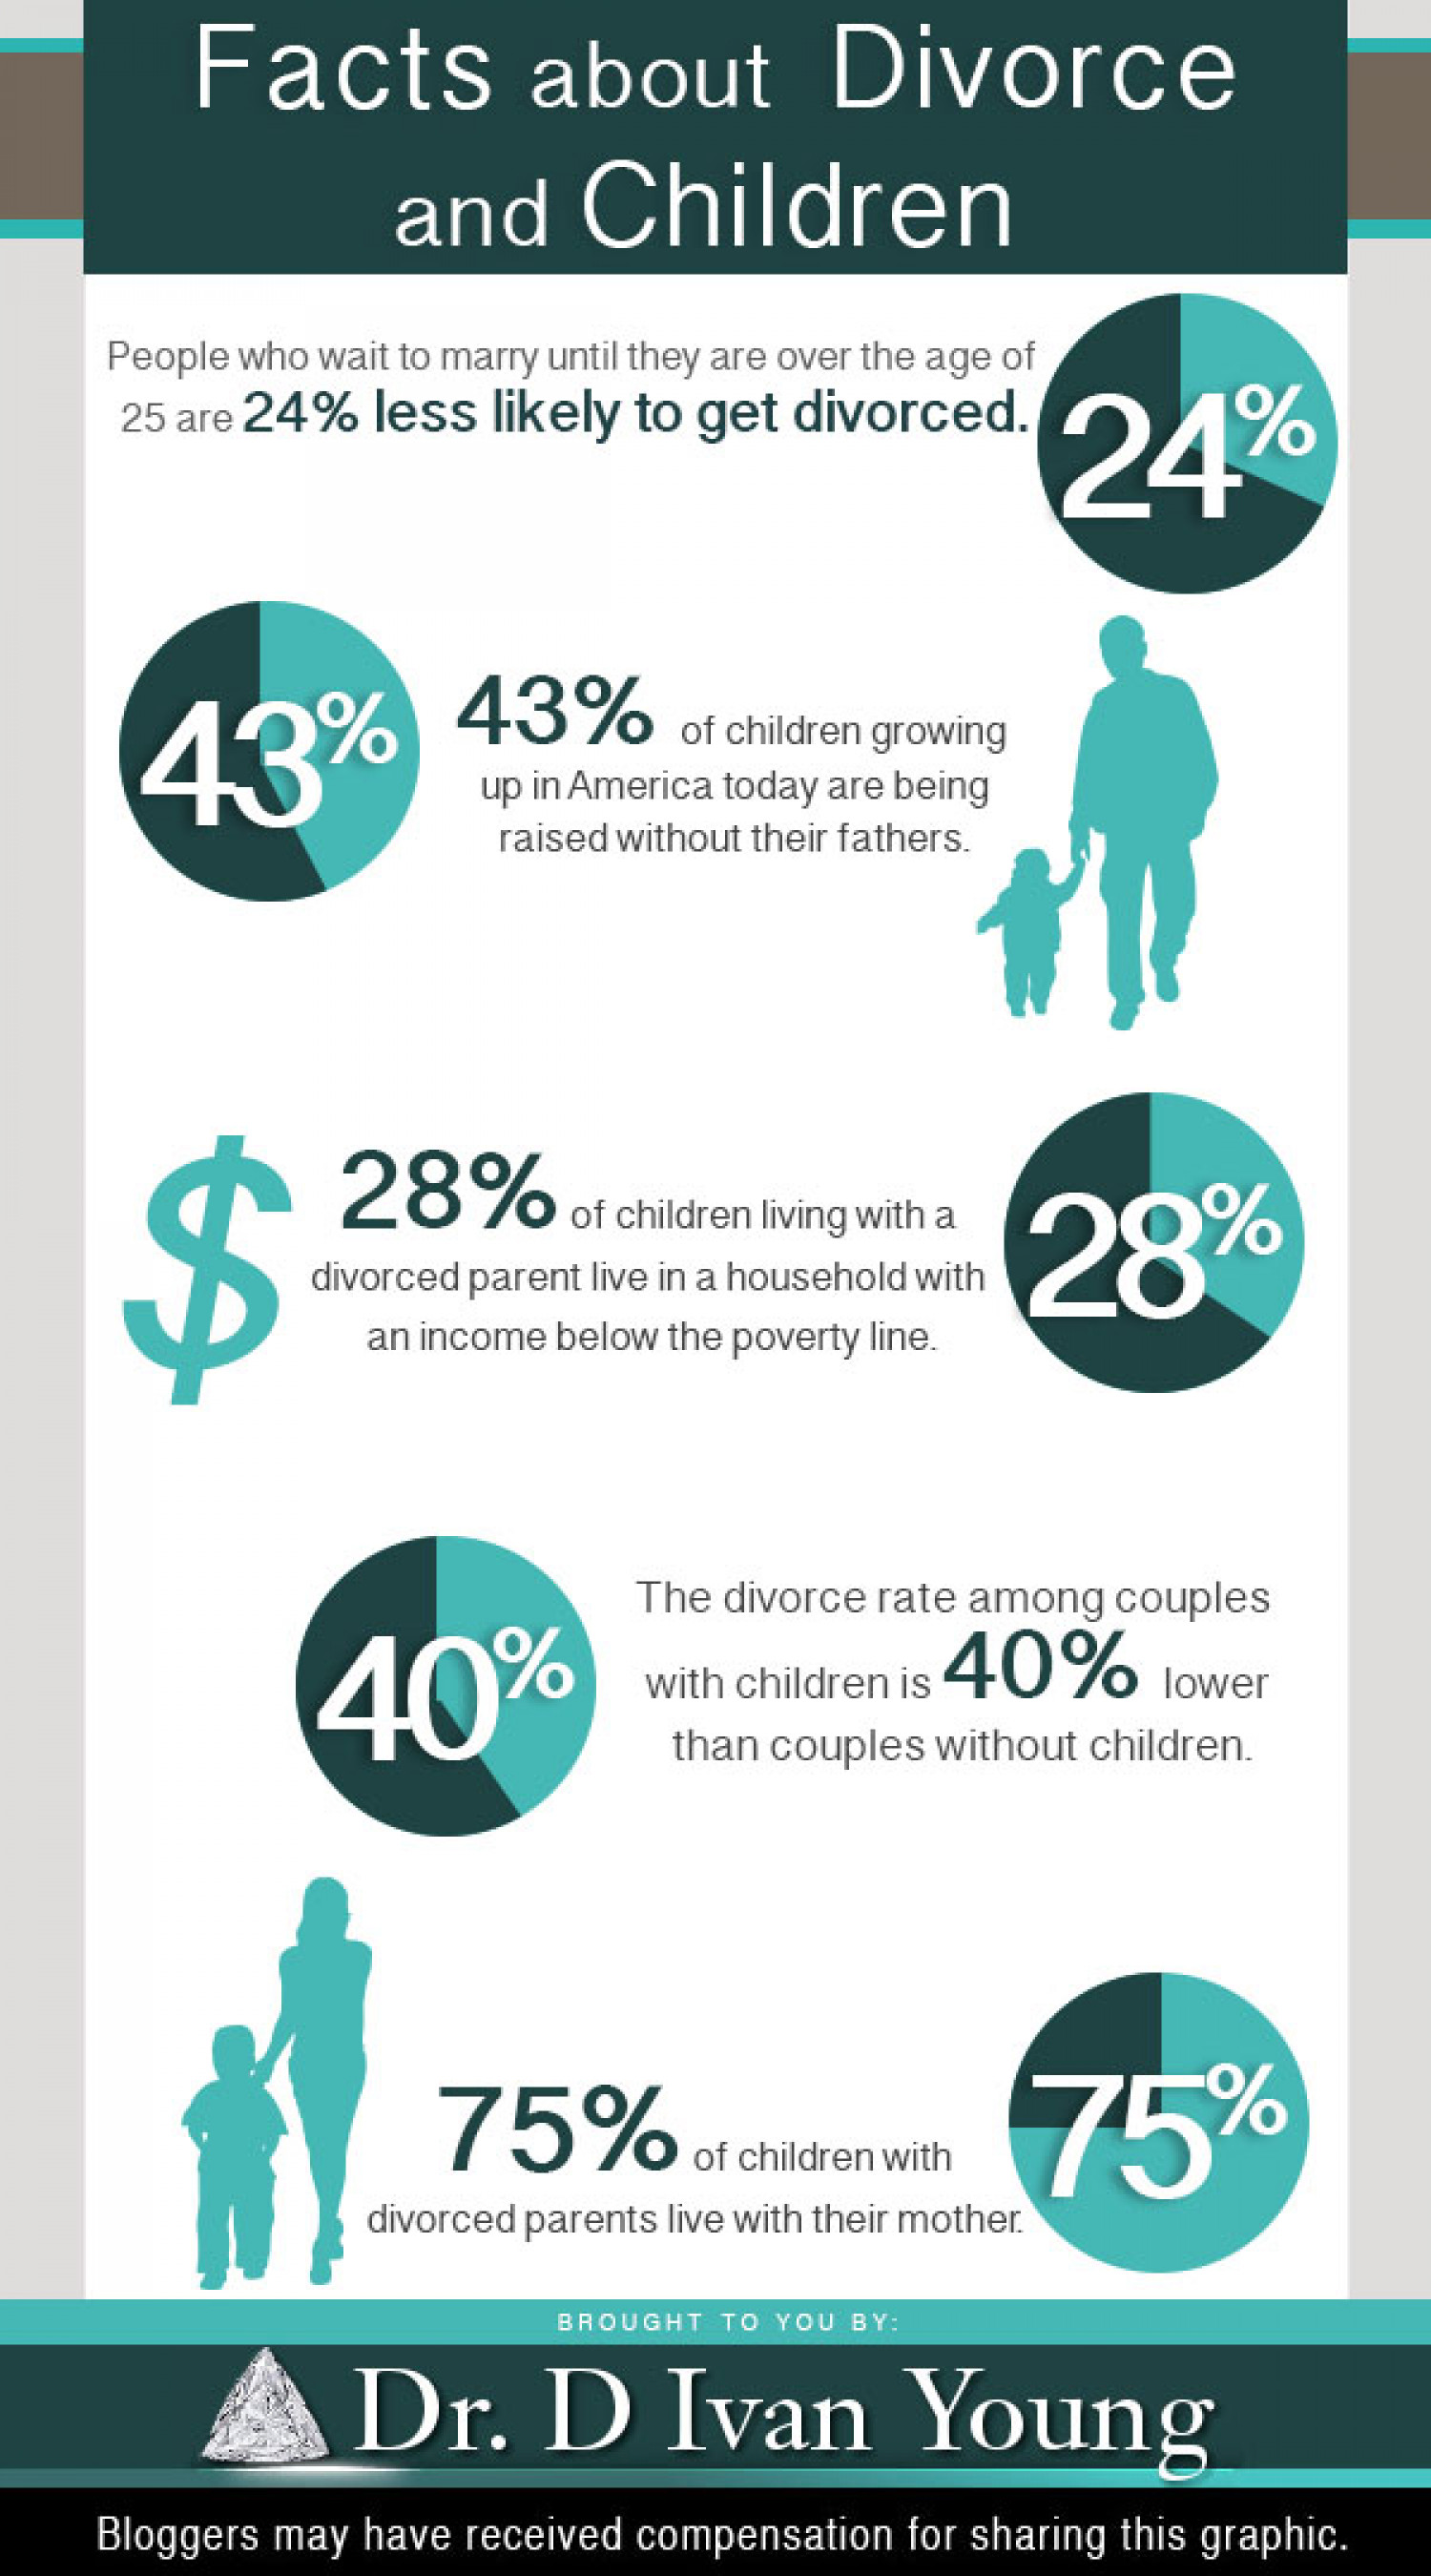 Facts About Divorce and Children | Visual.ly